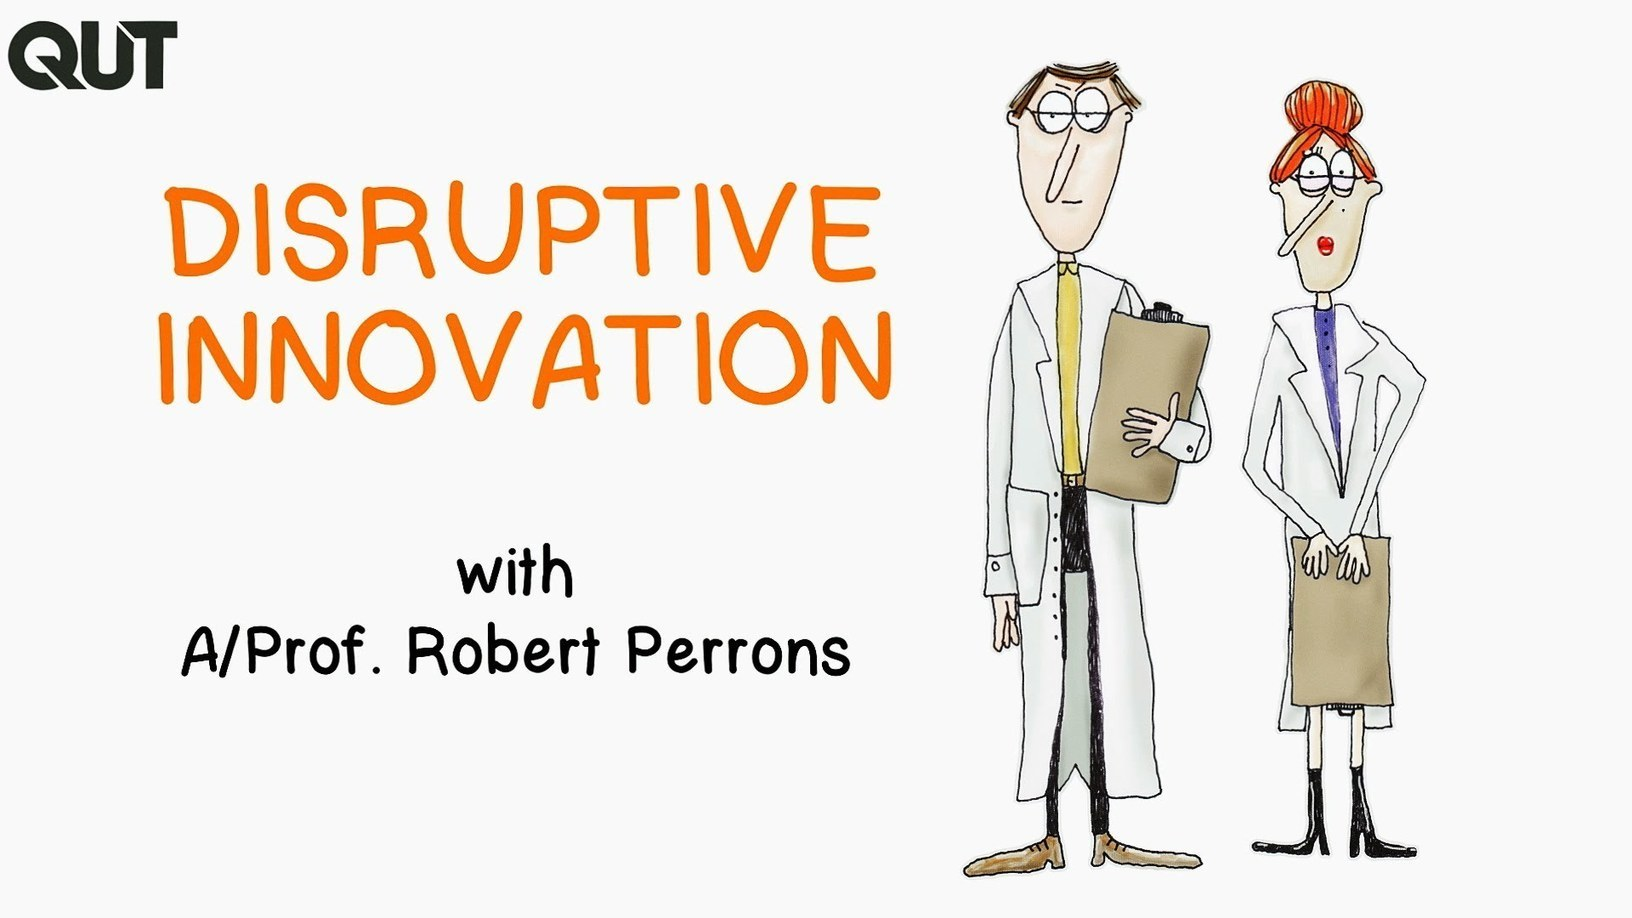 theories of disruptive innovation and value innovation The disruptive innovation model from clayton christensen is a theory that can be used for describing the impact of new technologies (revolutionary change) on a firm's existence clayton christensen first coined the phrase disruptive technologies in 1997, in his book the innovator's dilemma: when new technologies cause great firms to fail.